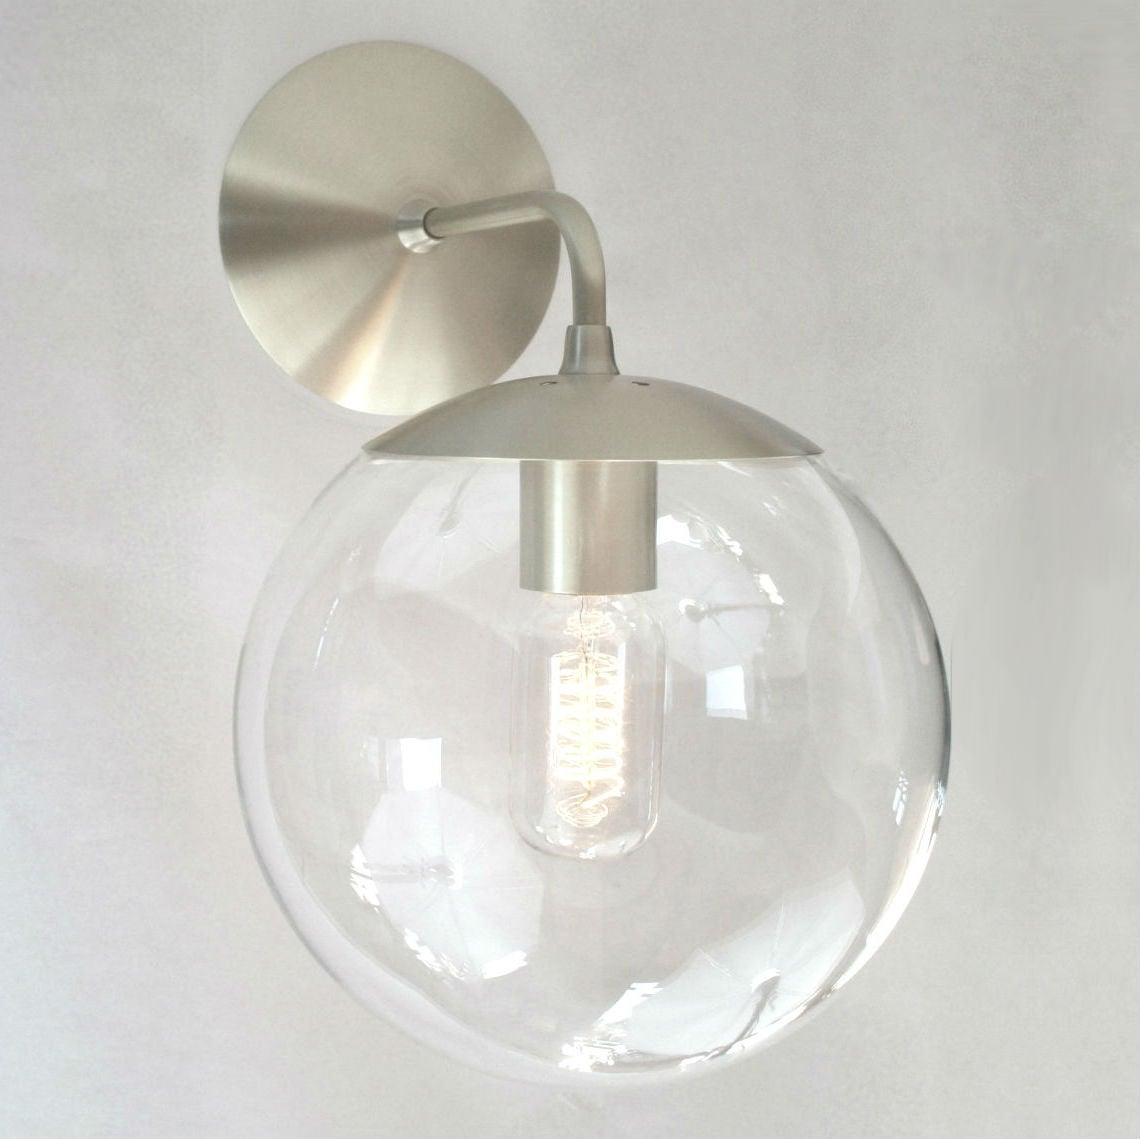 ... Image Of Adapted For Intu0027l Use   Orbiter 8 Wall Sconce   Mid Century ...